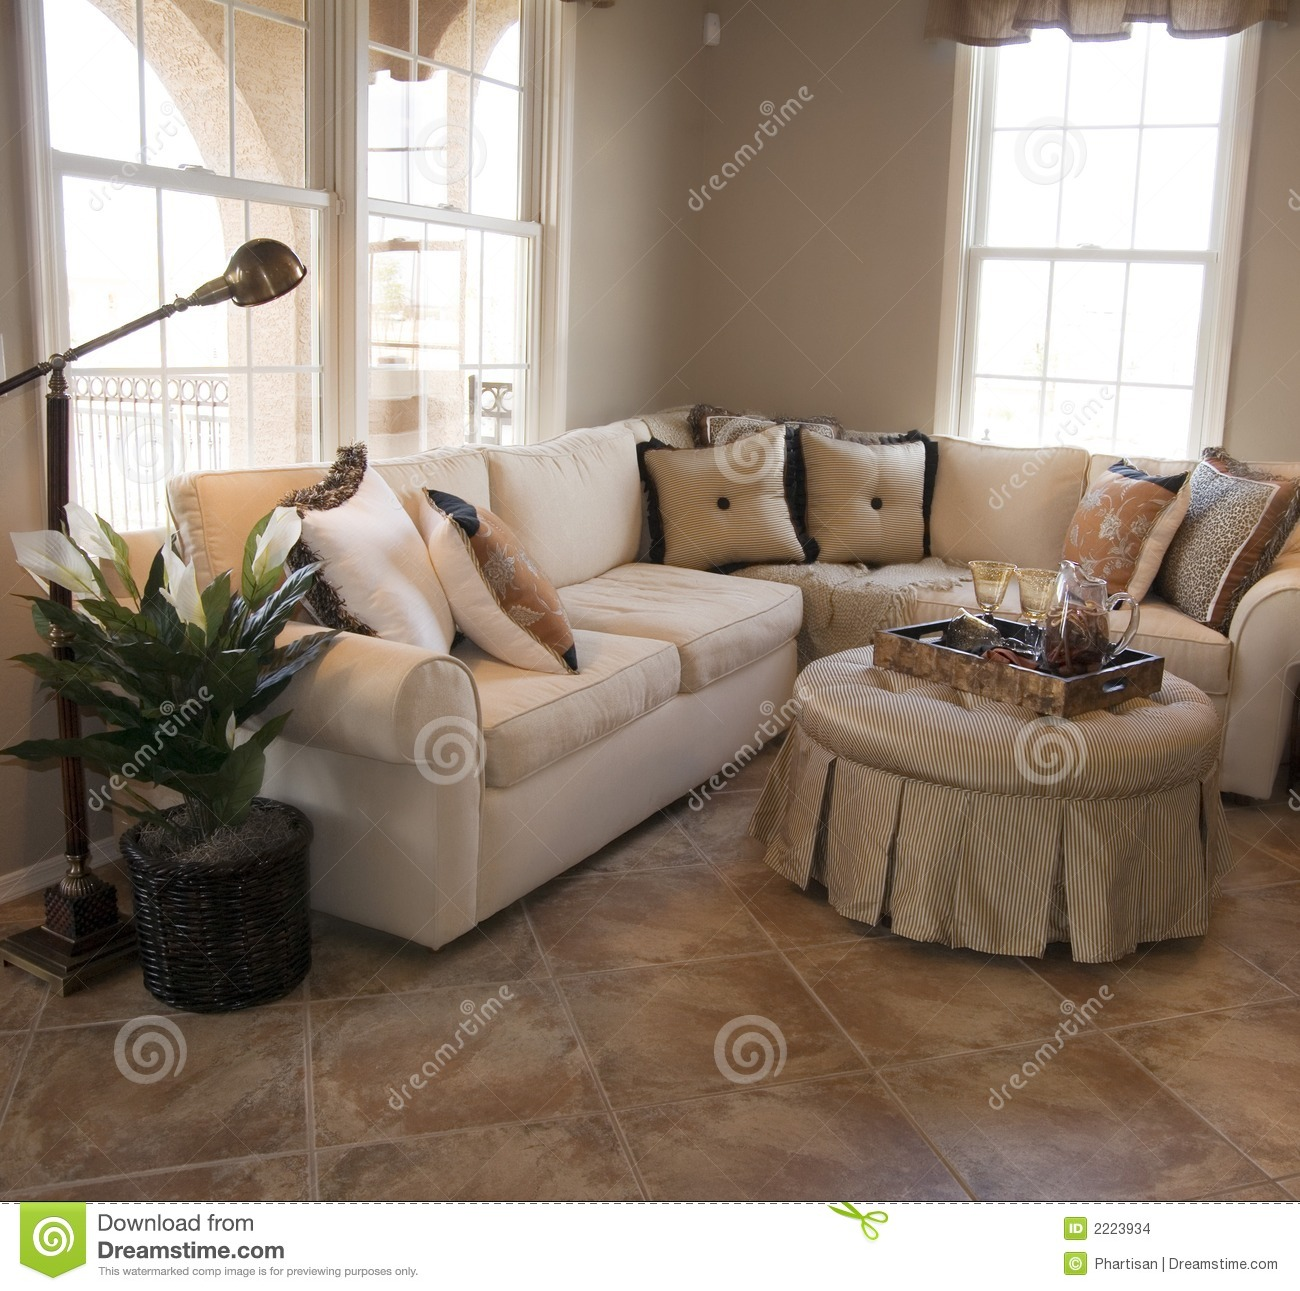 Model Home Interior Design Stock Images - Image: 2223934